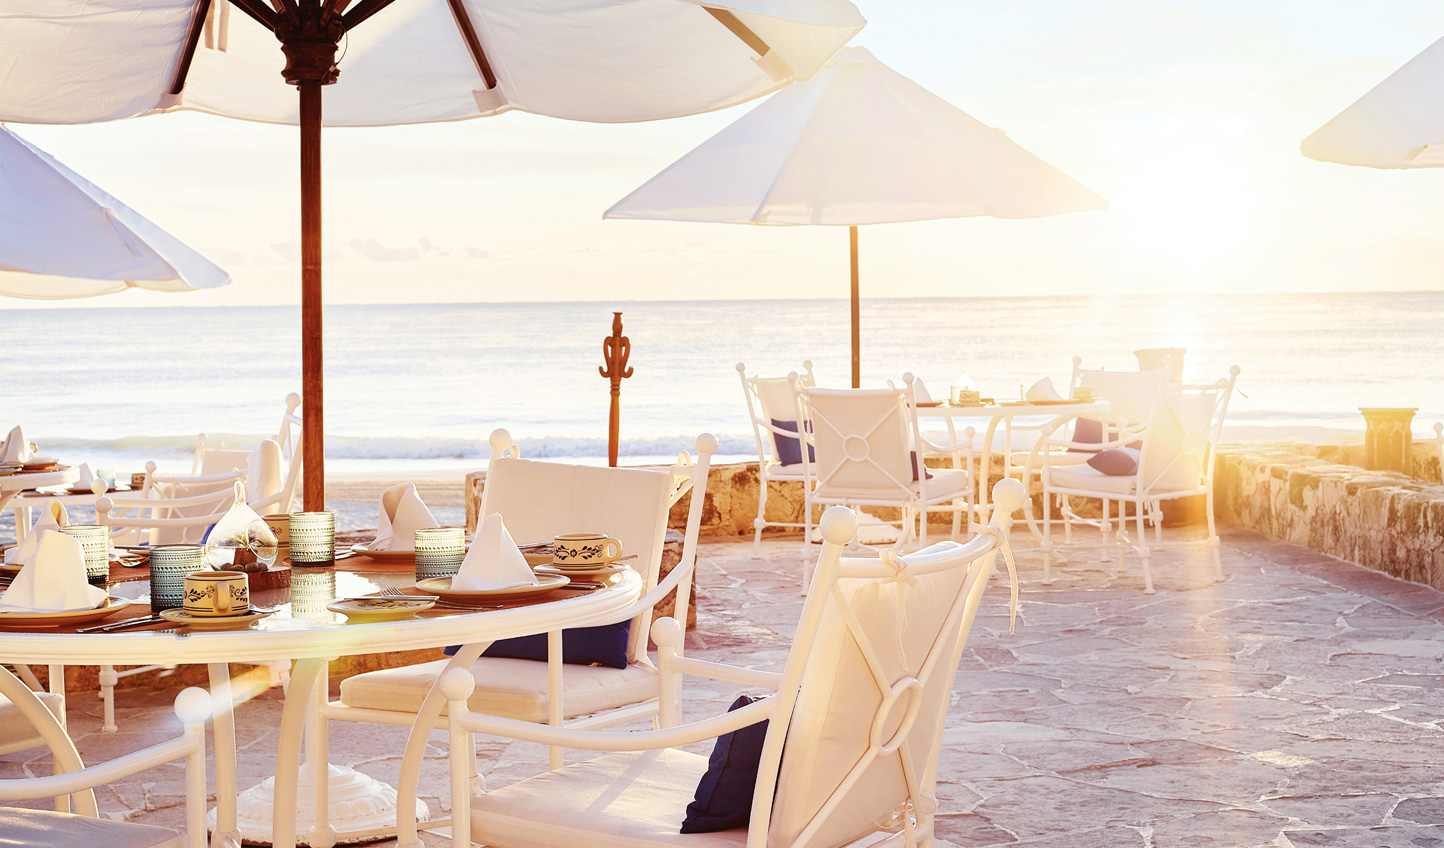 Dine by the crashing waves